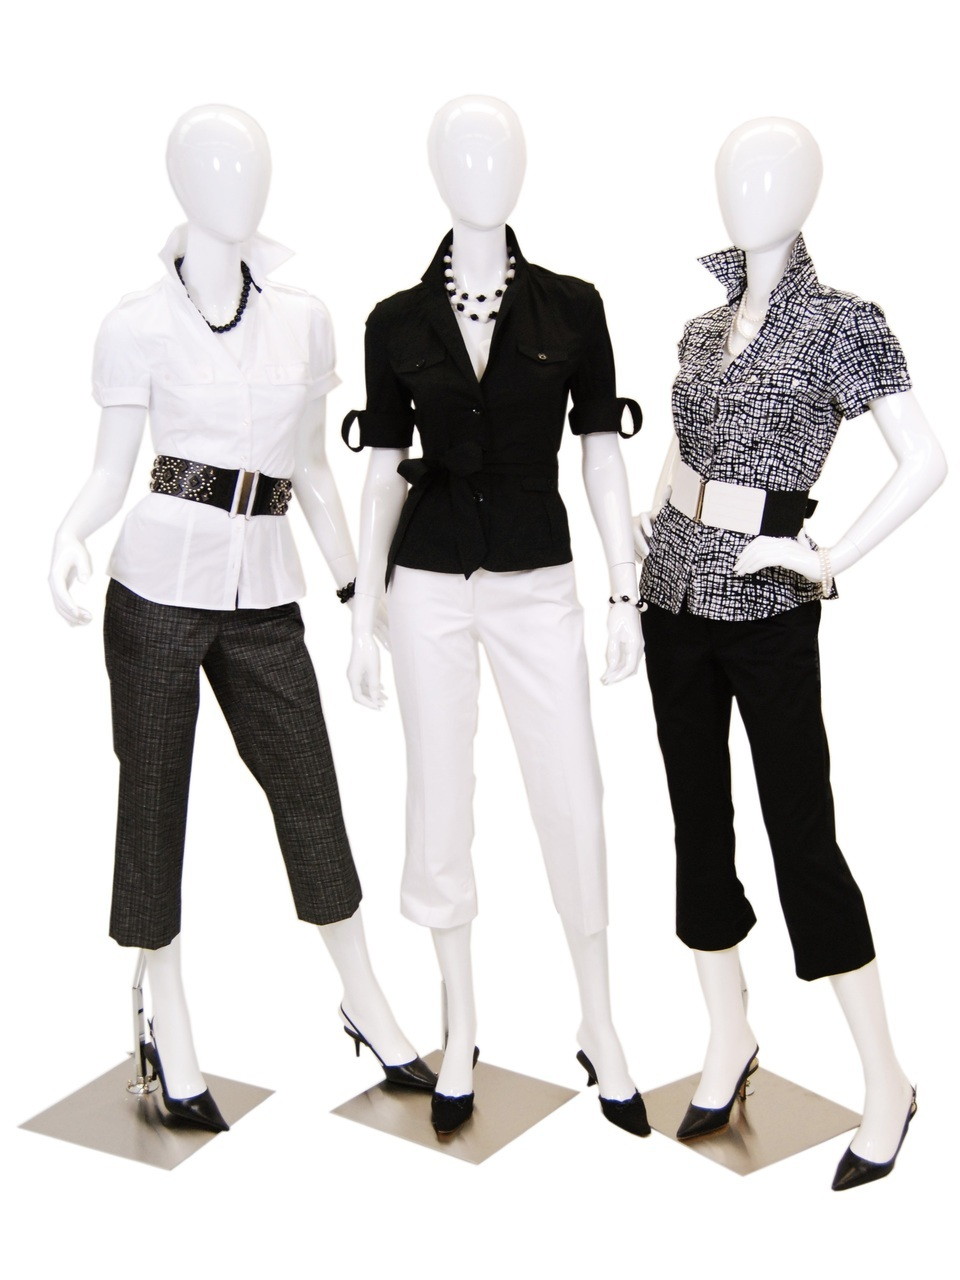 3 Gloss White Abstract Egg Head Mannequins